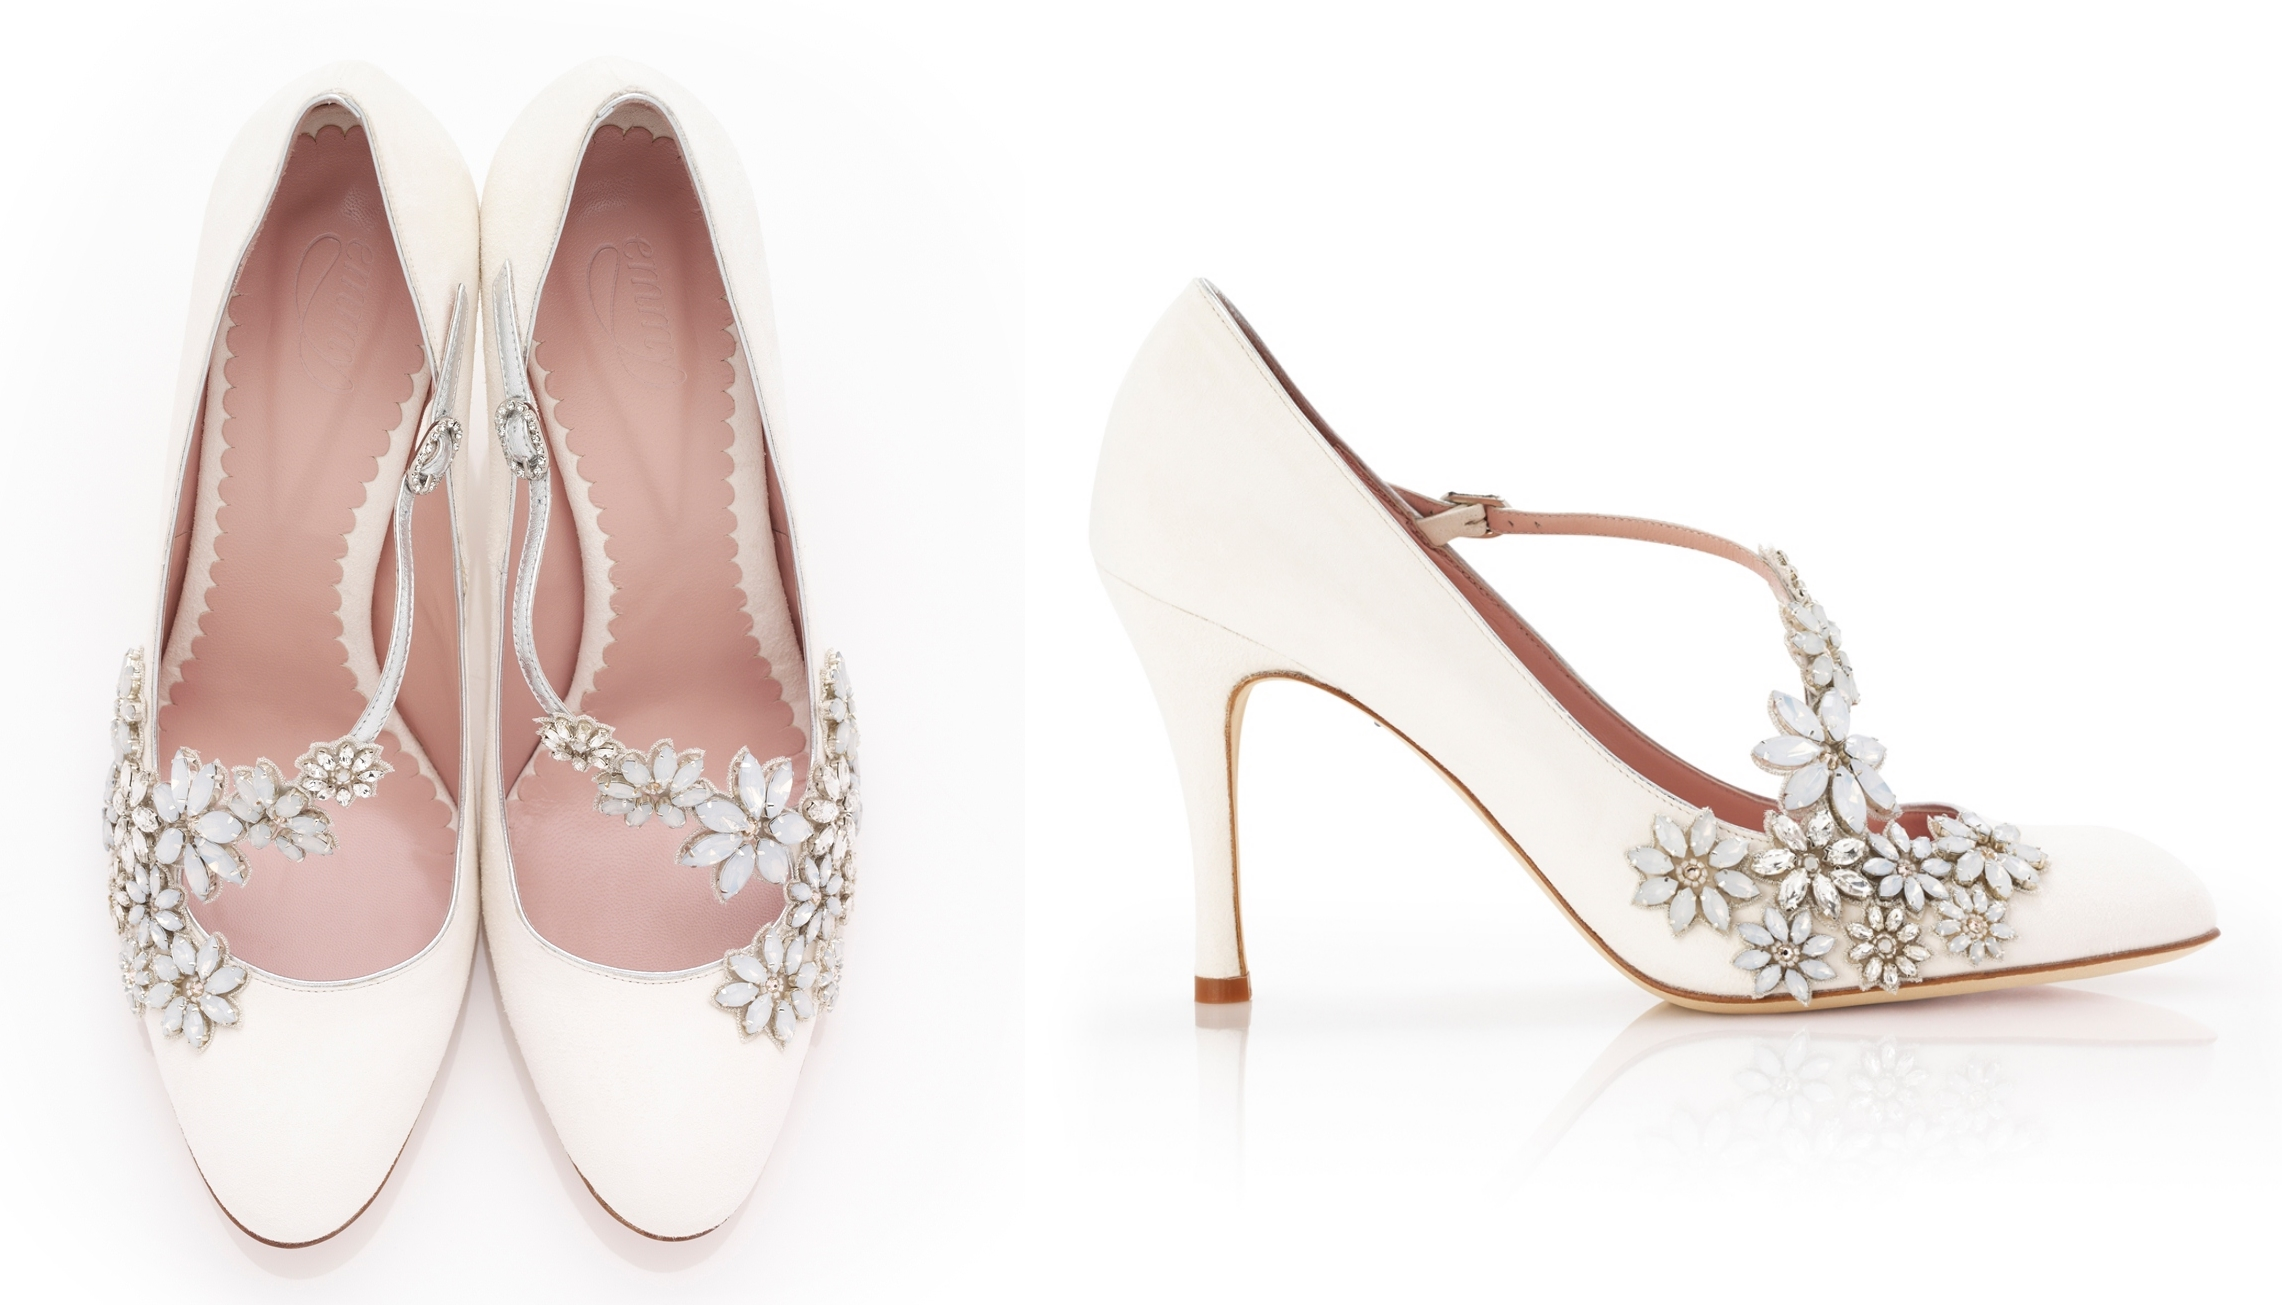 Daisy Ivory from the Celeste Collection by Emmy Shoes